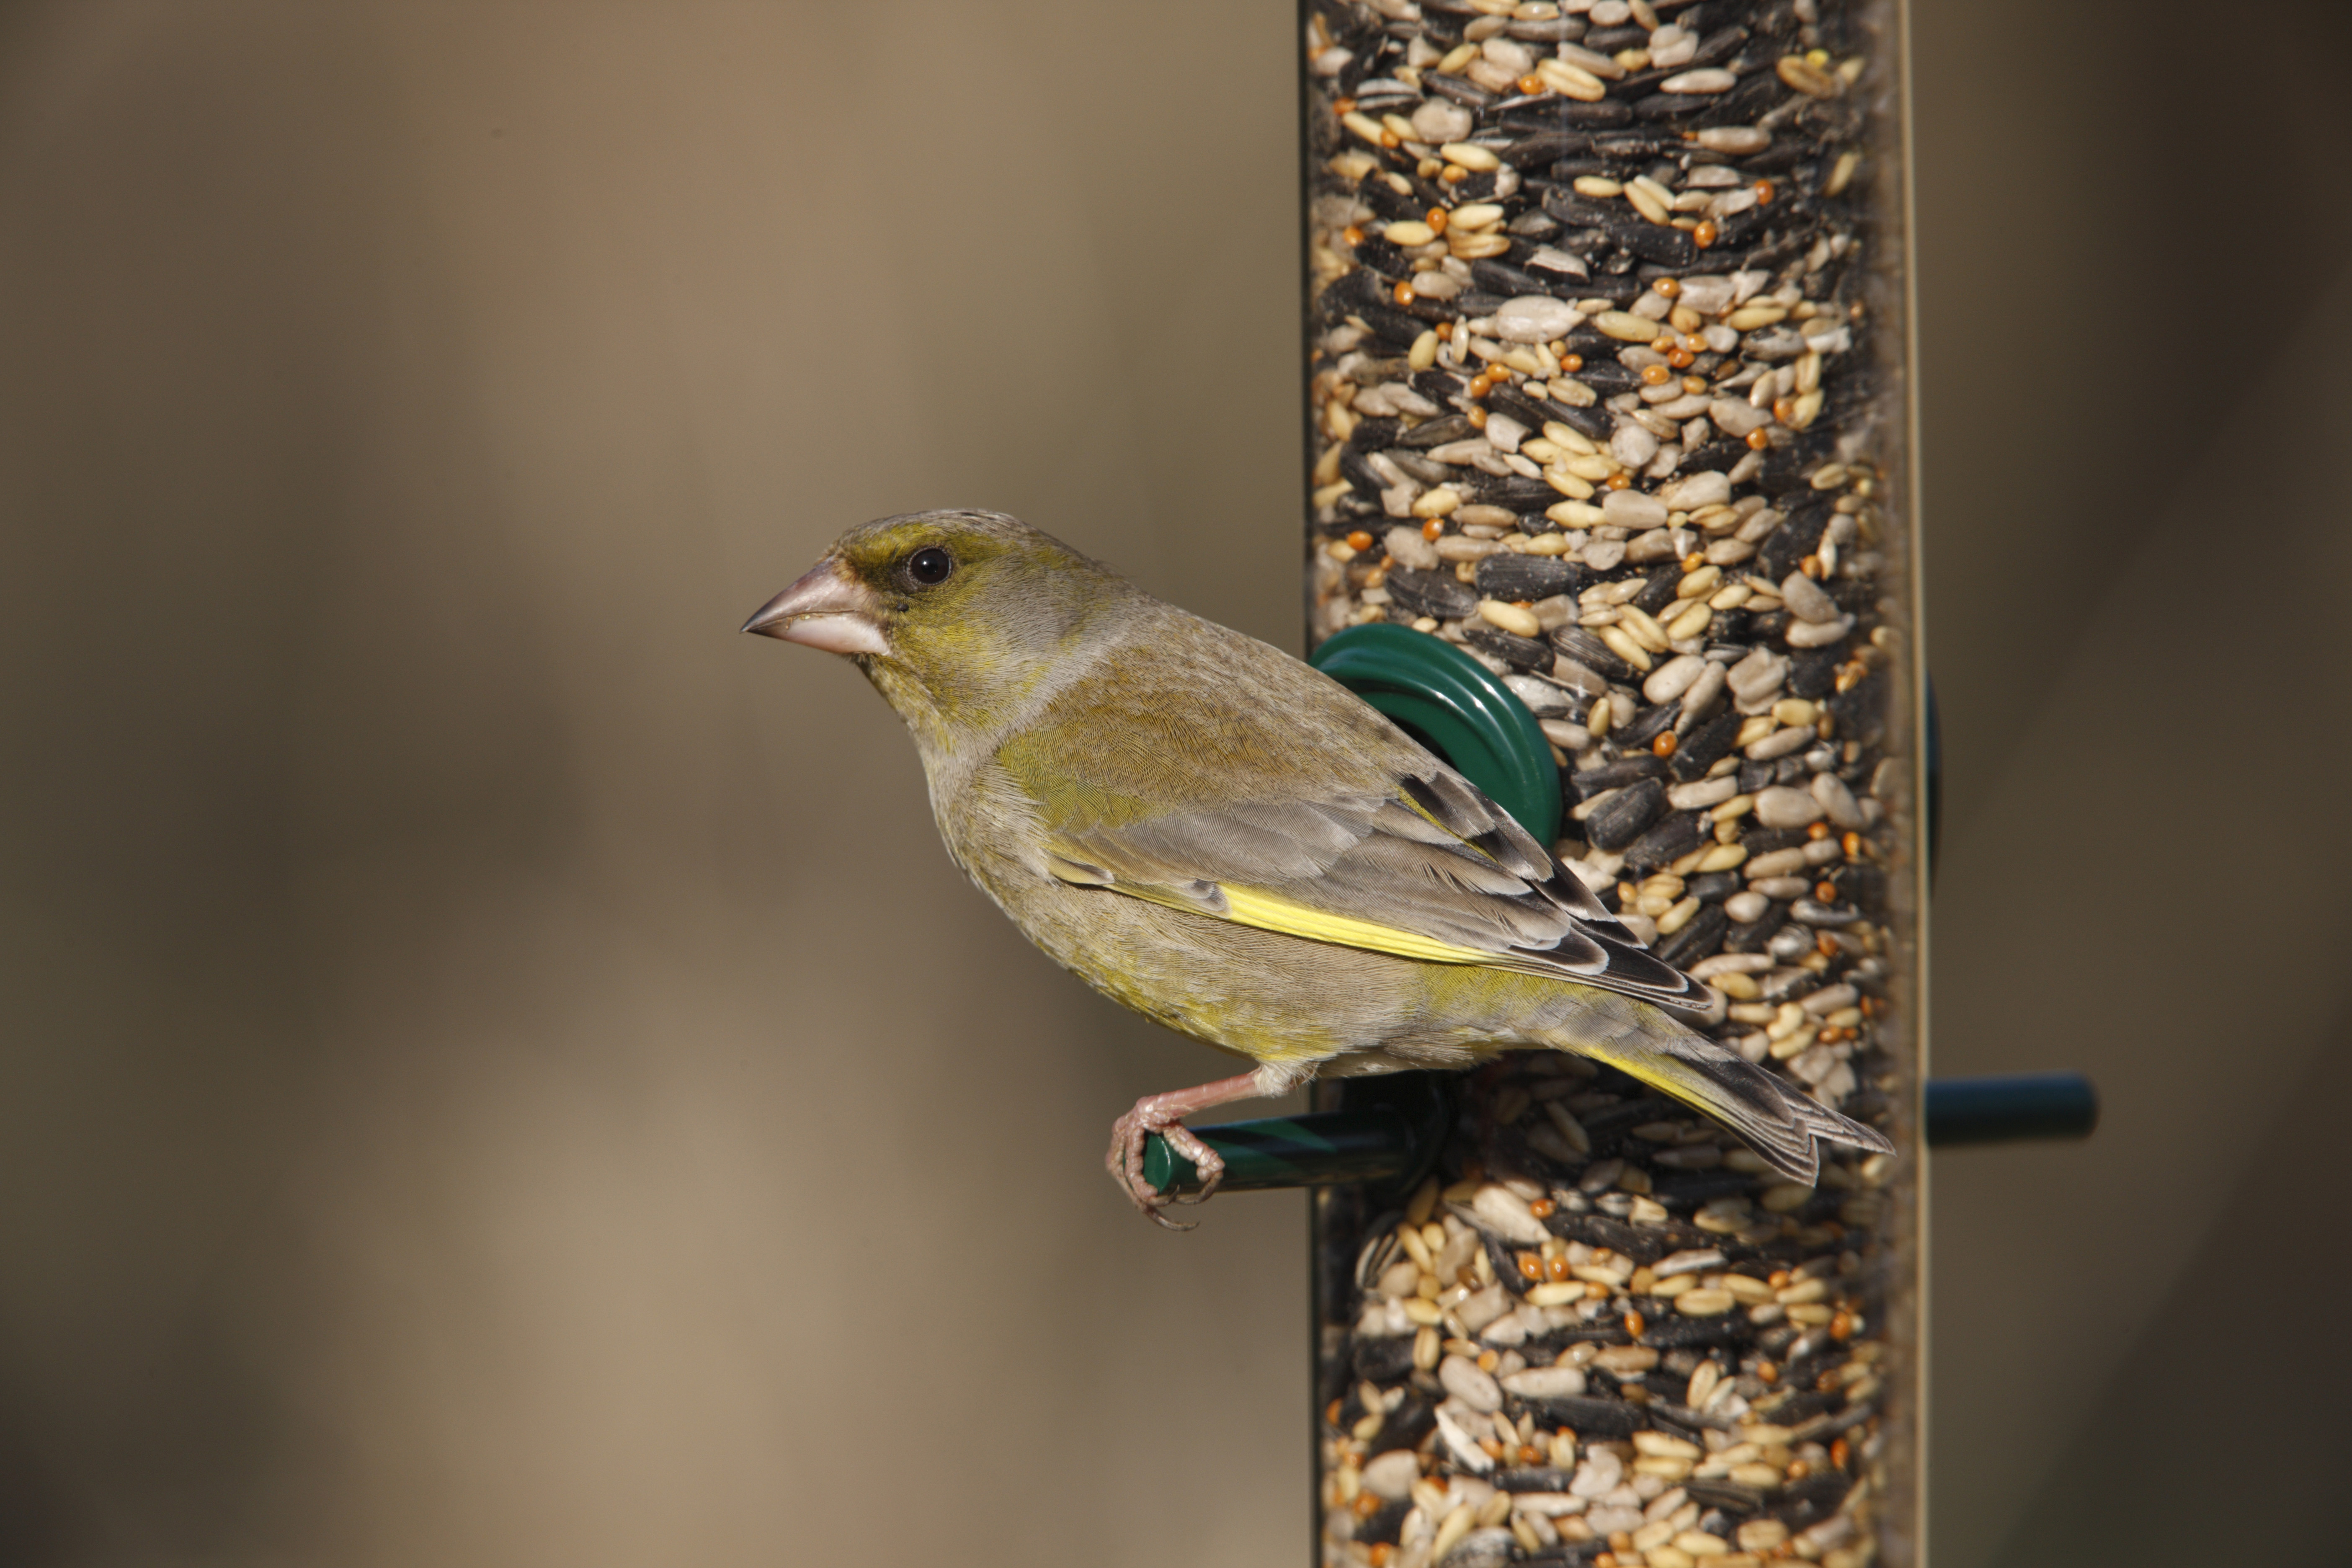 A bird feeder with a greenfinch on it (Nigel Blake/RSPB/PA)